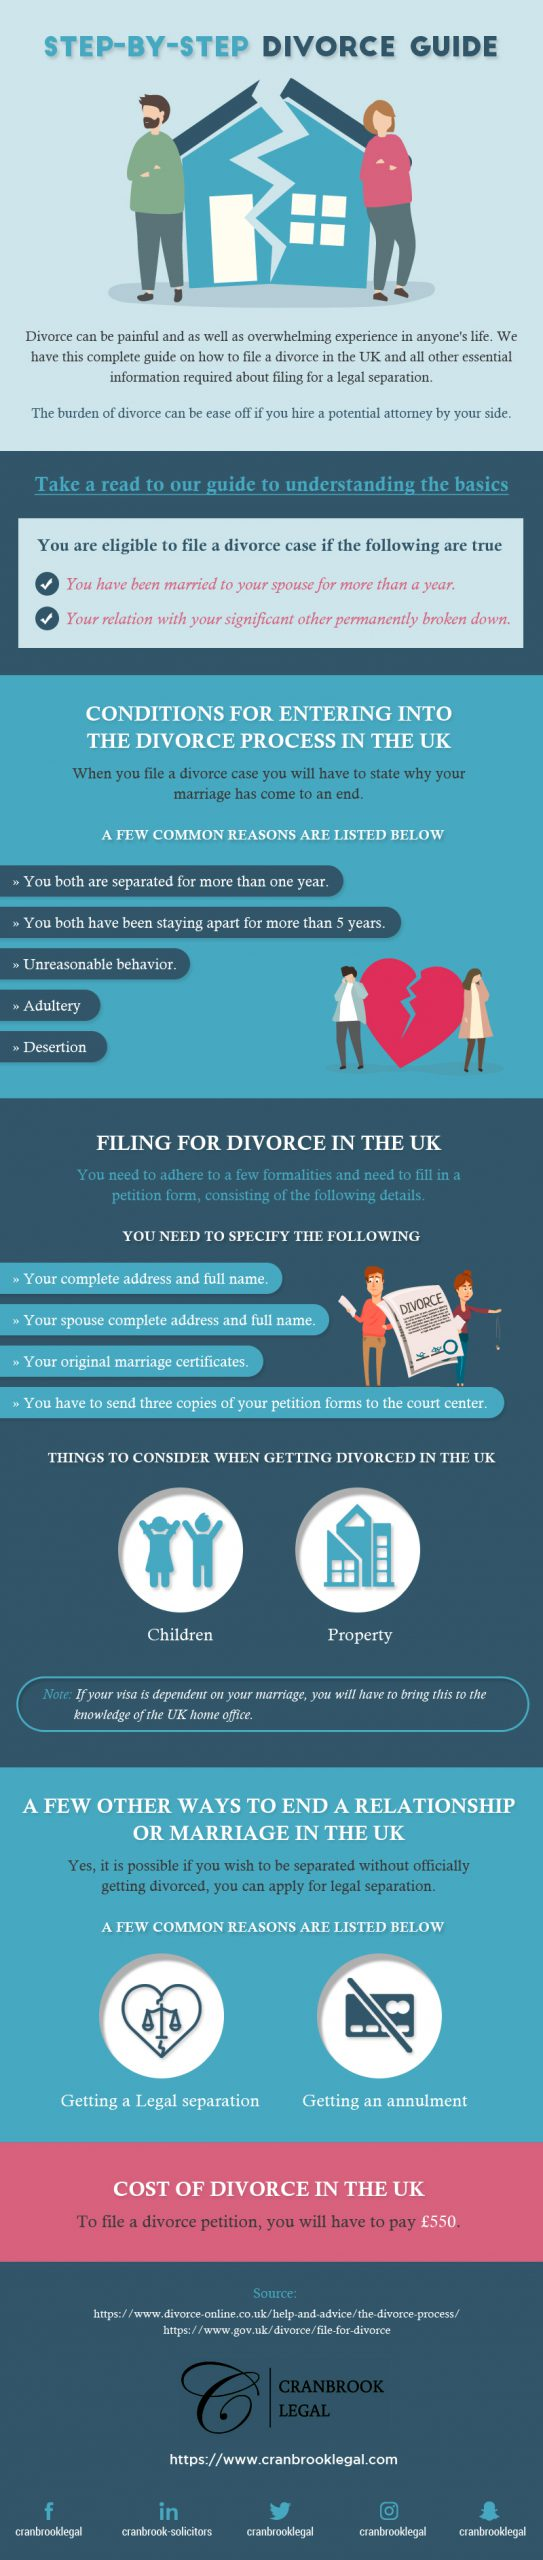 Step by Step Divorce Guide scaled